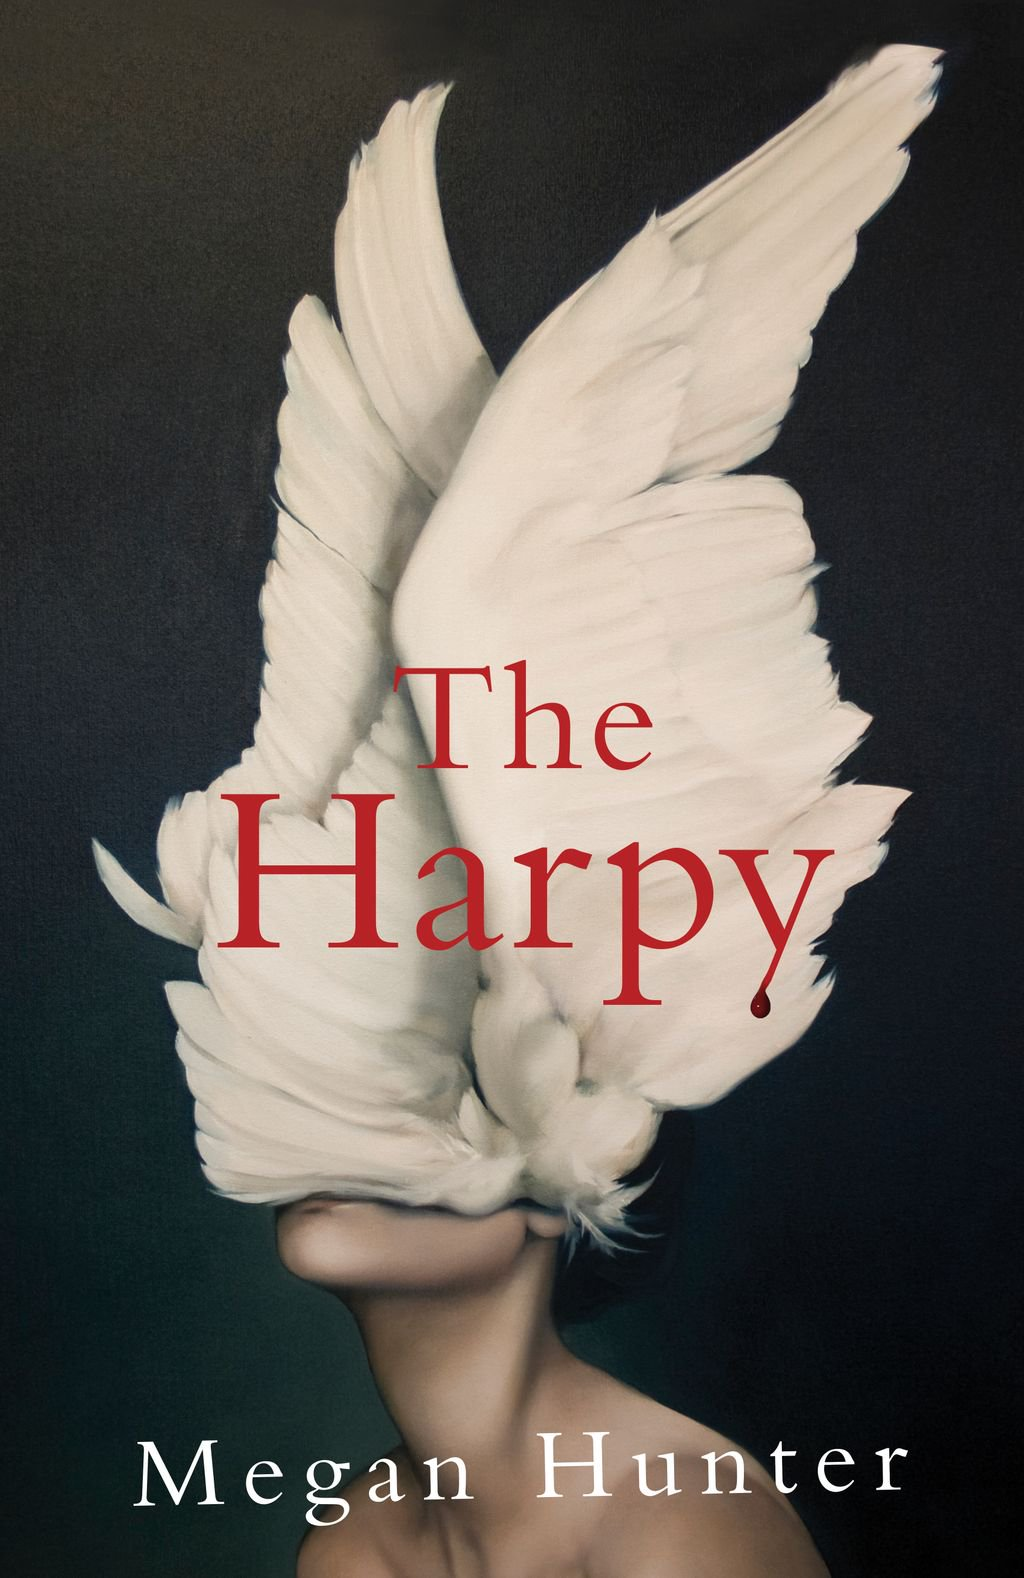 Cover of the book, The Harpy by Megan Hunter